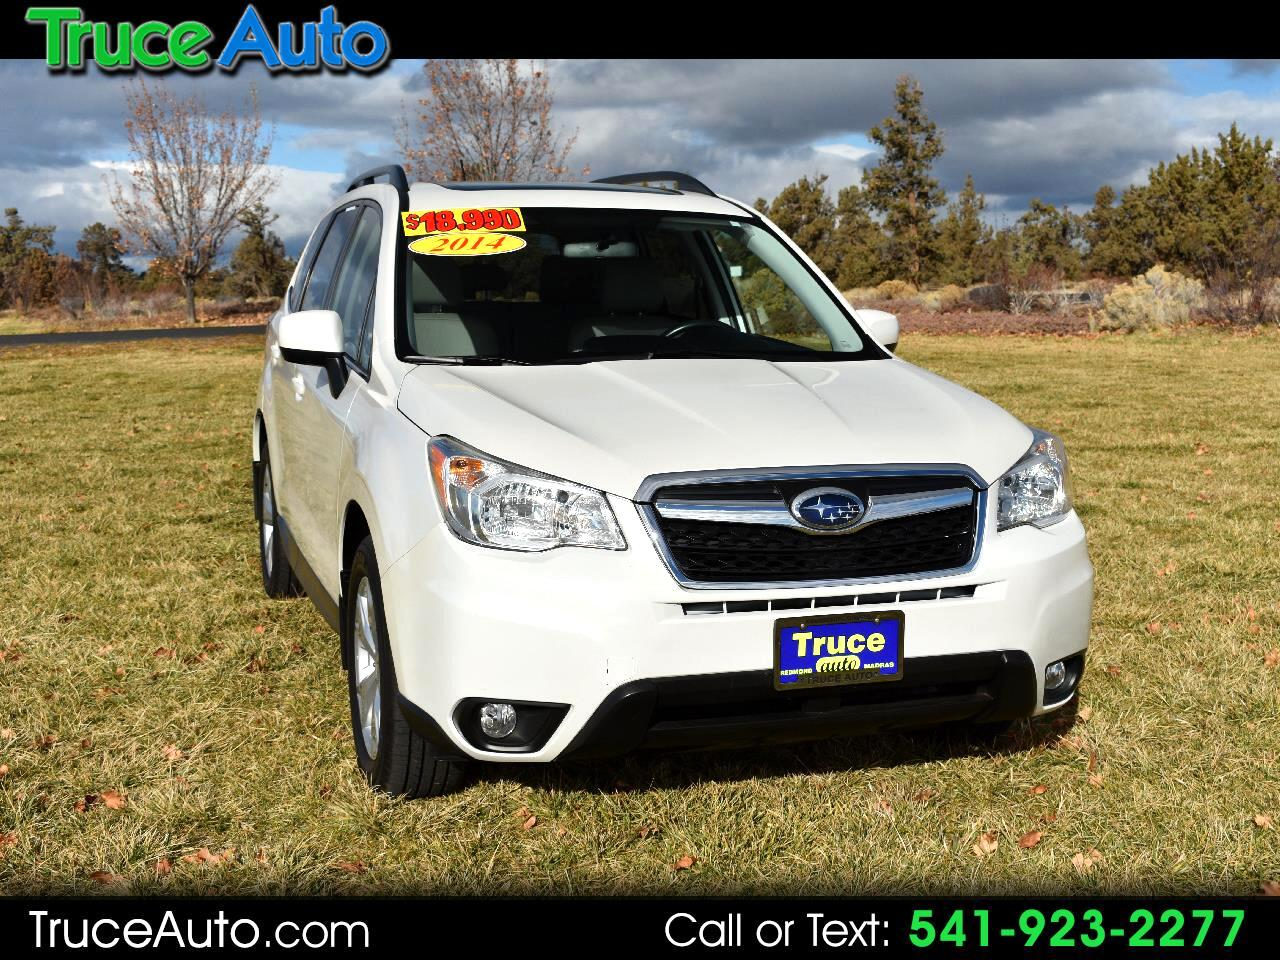 2014 Subaru Forester Limited 2.5i AWD ***WELL MAINTAINED***